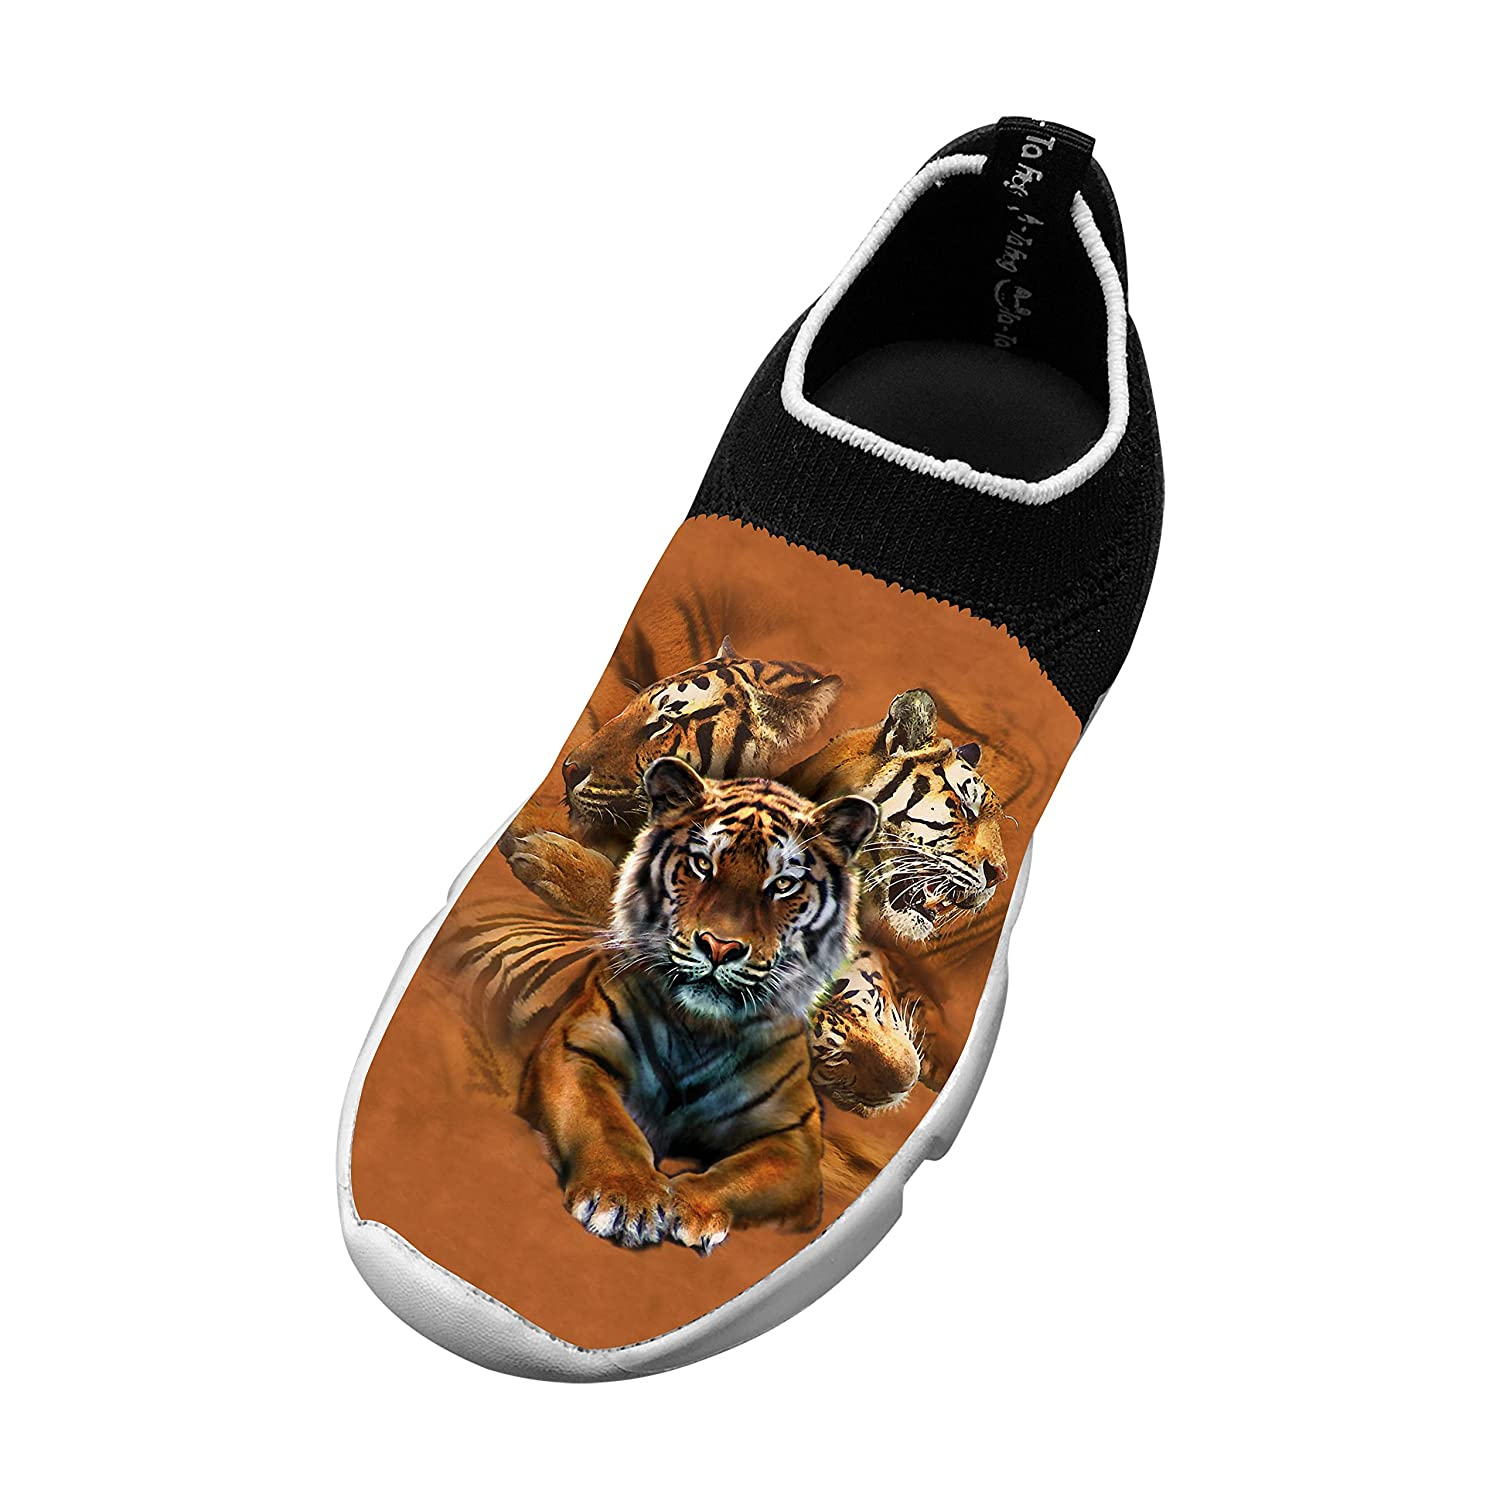 New Sports Flywire Weaving Jogging Shoes 3D Make Your Own With Resting Tiger Collage For Unisex Children